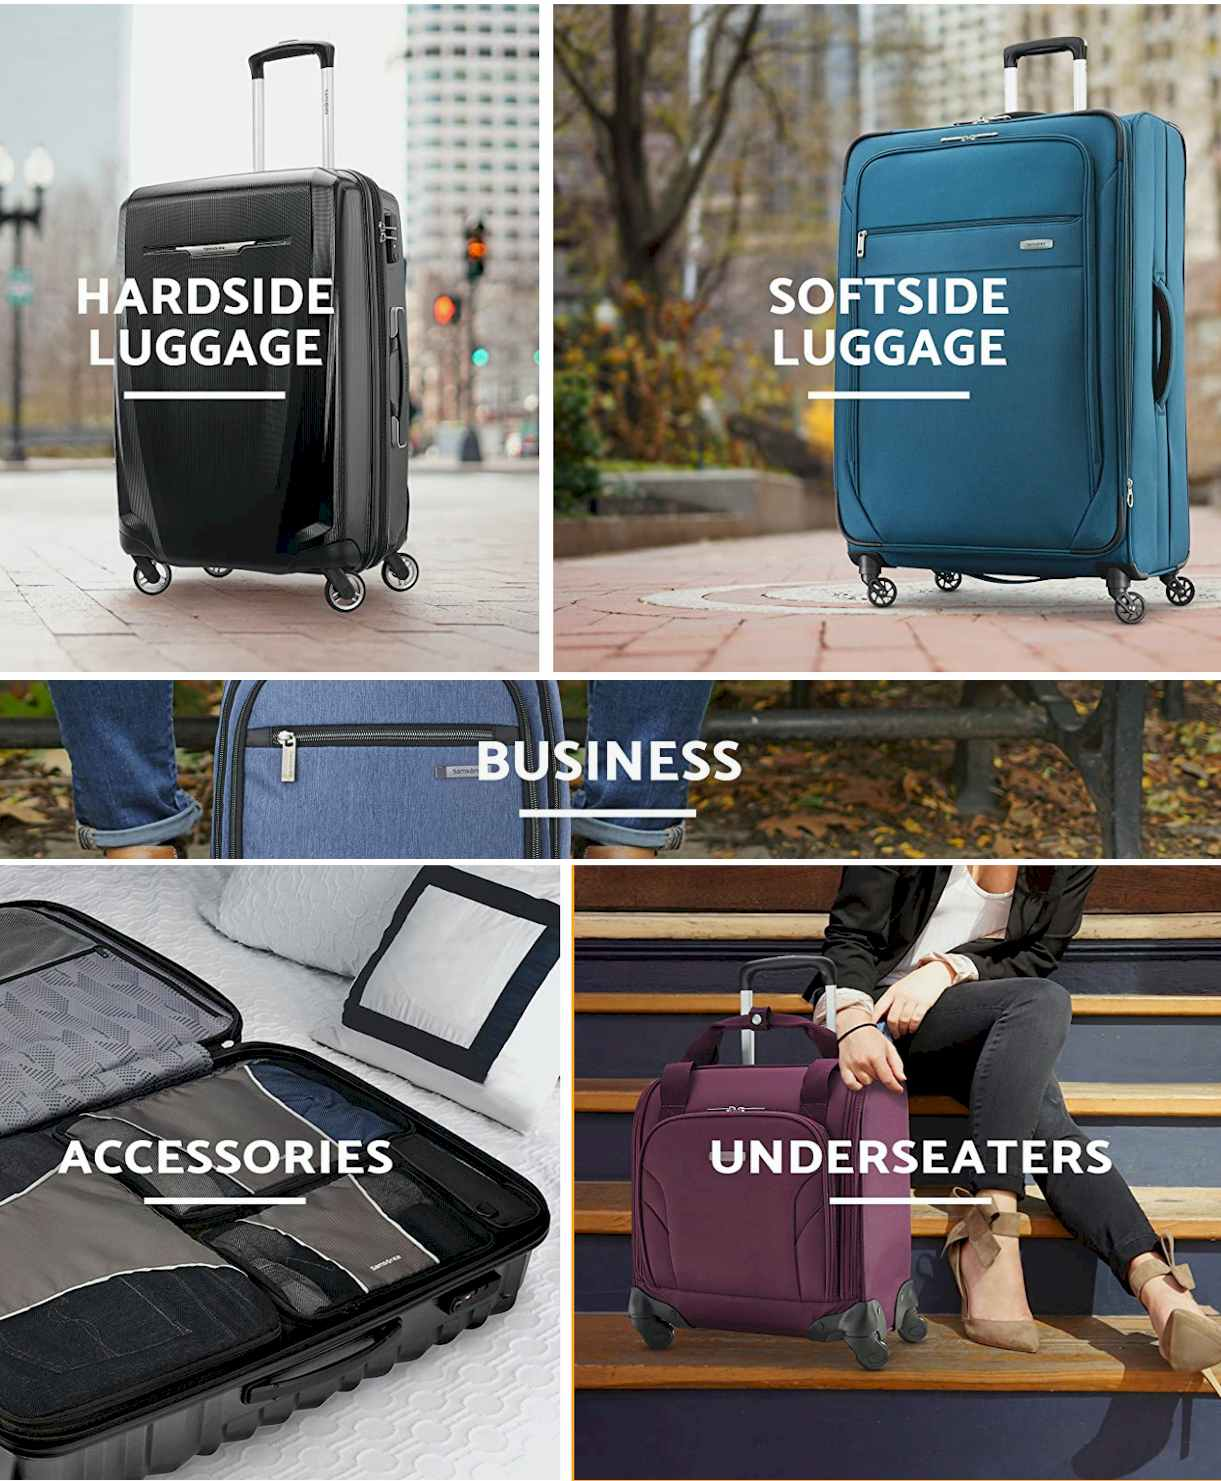 SAMSONITE Store  -Luggage & Suitcases #Travel Gear - Travel gadgets